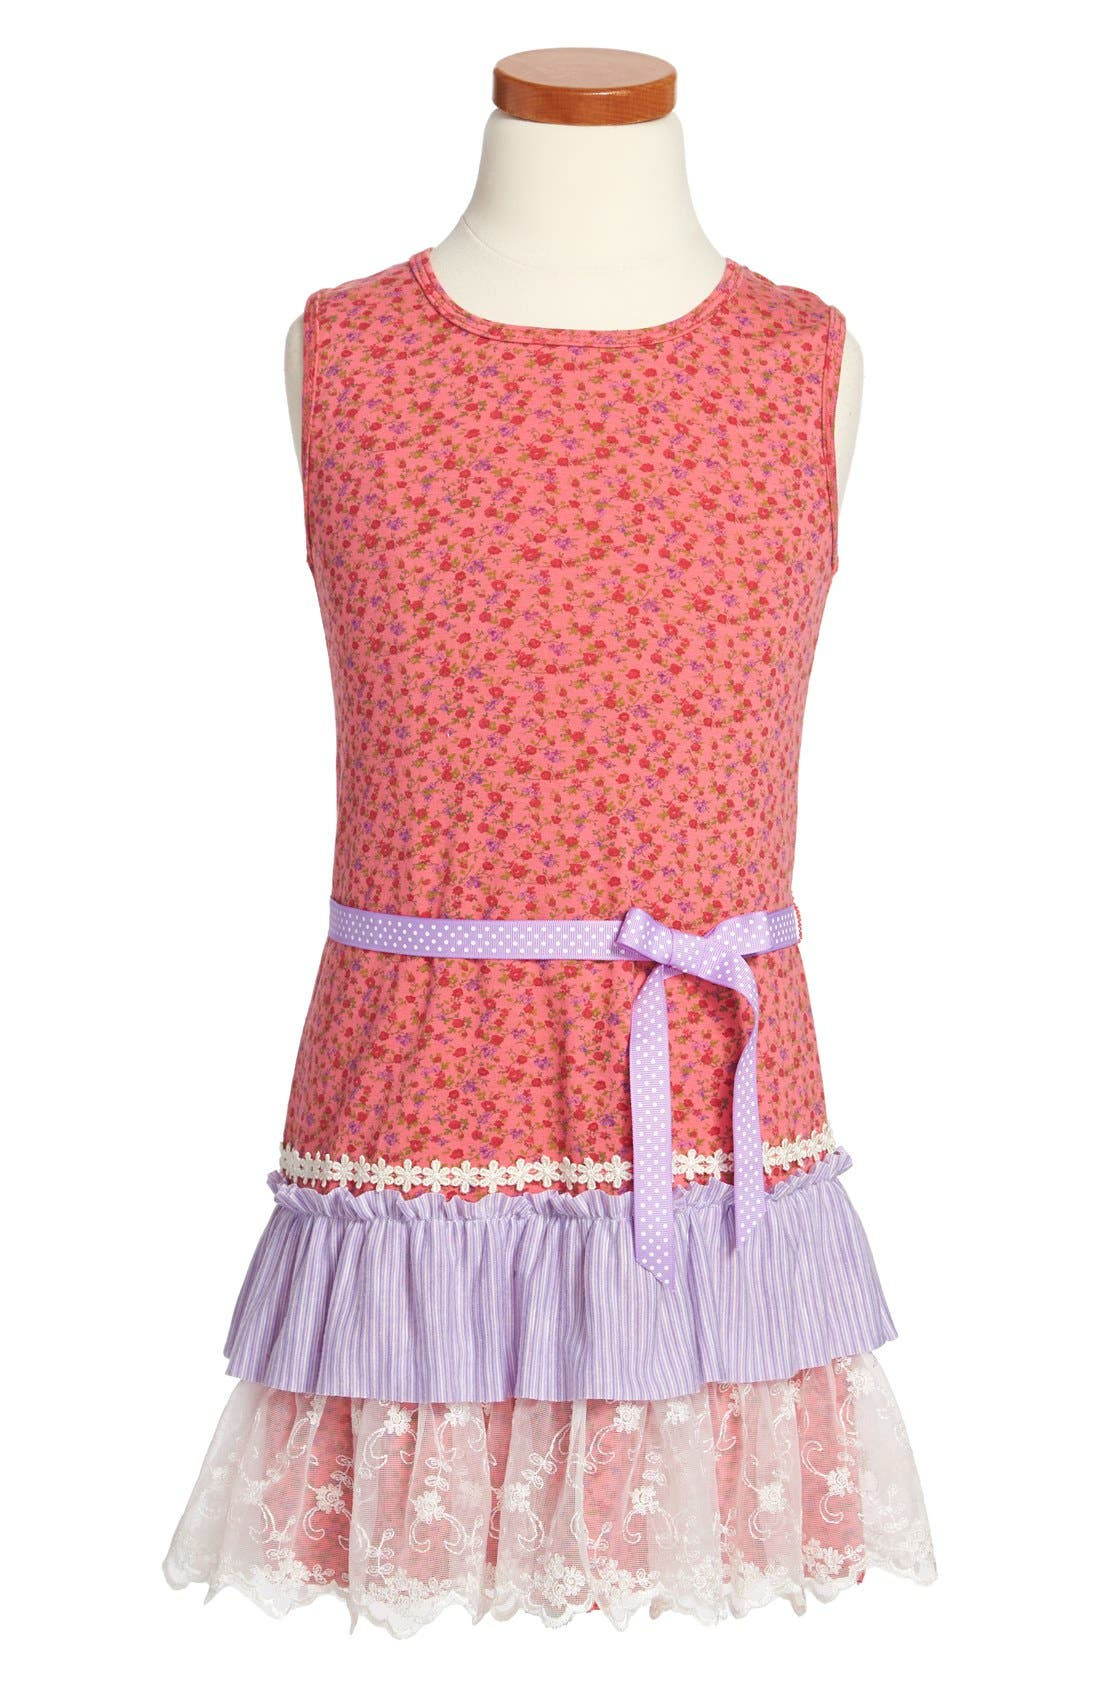 Alternate Image 1 Selected - Twirls & Twigs Floral Print Sleeveless Dress (Little Girls & Big Girls)